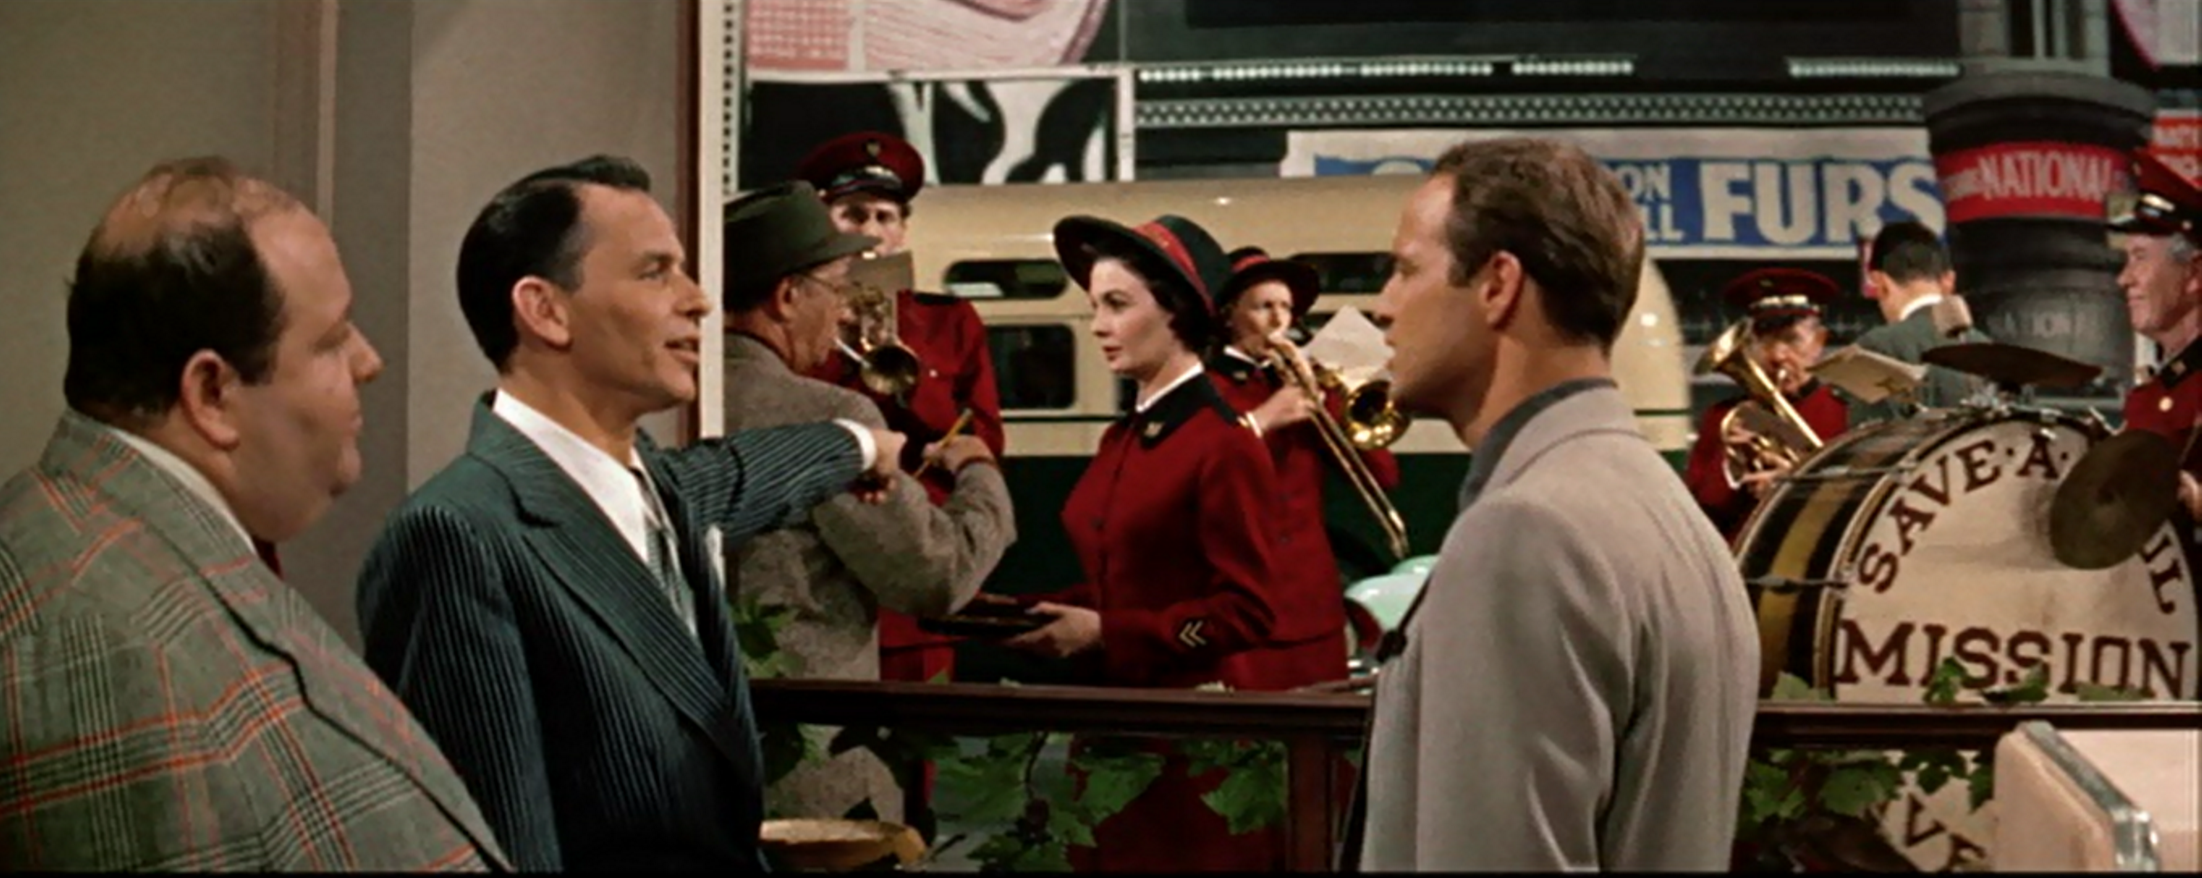 (From left) Stubby Kaye, Frank Sinatra (pointing to) Jean Simmons, Marlon Brando